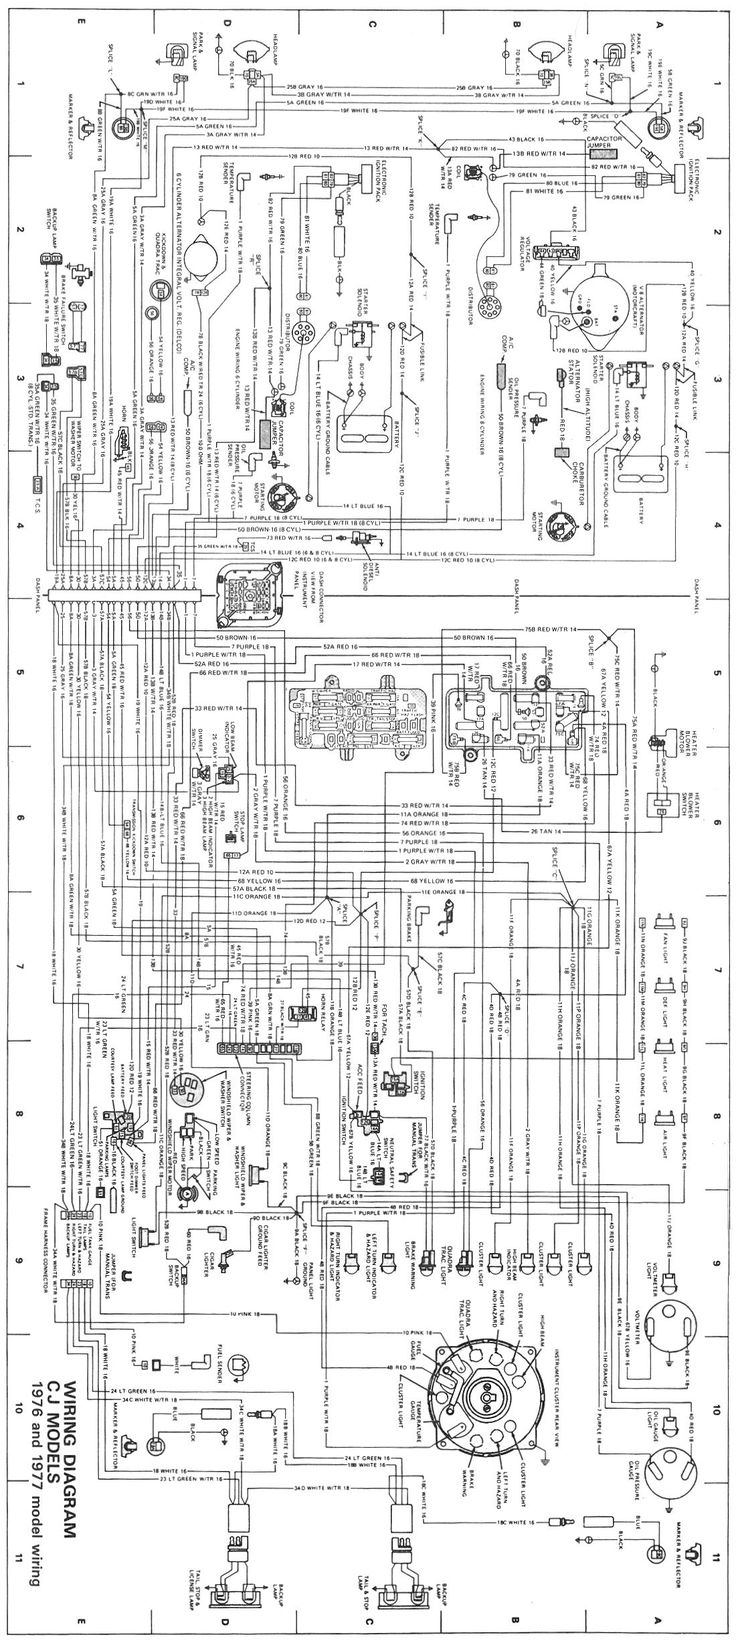 8d25ded6e3673519e155875e09844e5e jeep cj jeep stuff 74 best 1976 jeep cj5 ideas, parts etc images on pinterest jeeps 1981 jeep cj7 wiring diagram at fashall.co